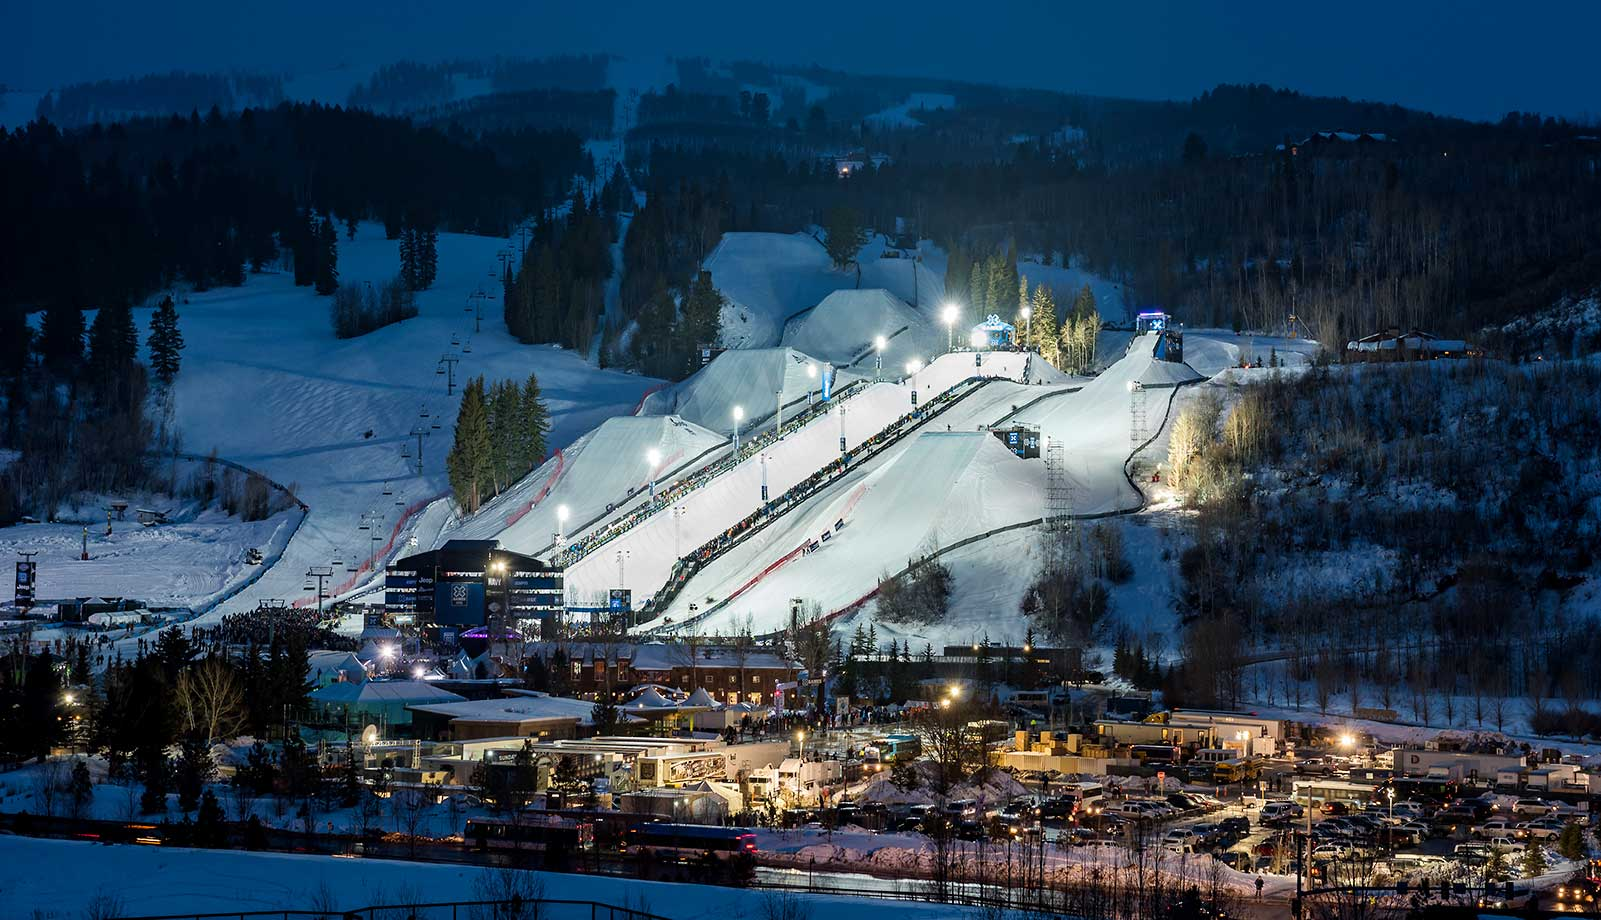 The venue at the Winter X Games 2016 Aspen at Buttermilk Mountain is lit up on the evening of Jan. 30 in Colorado.